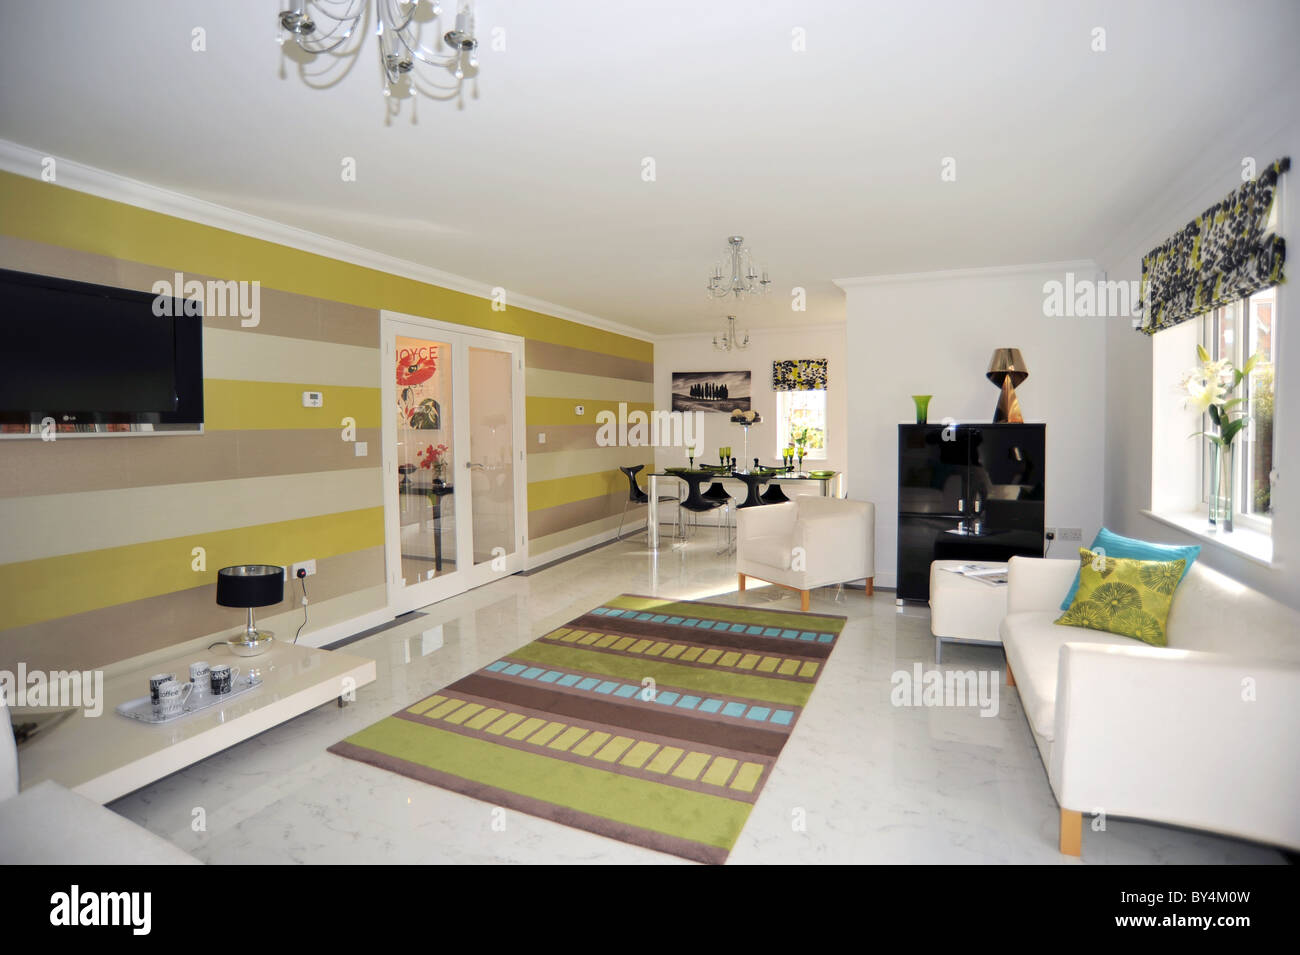 Neue show home Lounge-Interieur - UK Stockfoto, Bild: 33909593 - Alamy